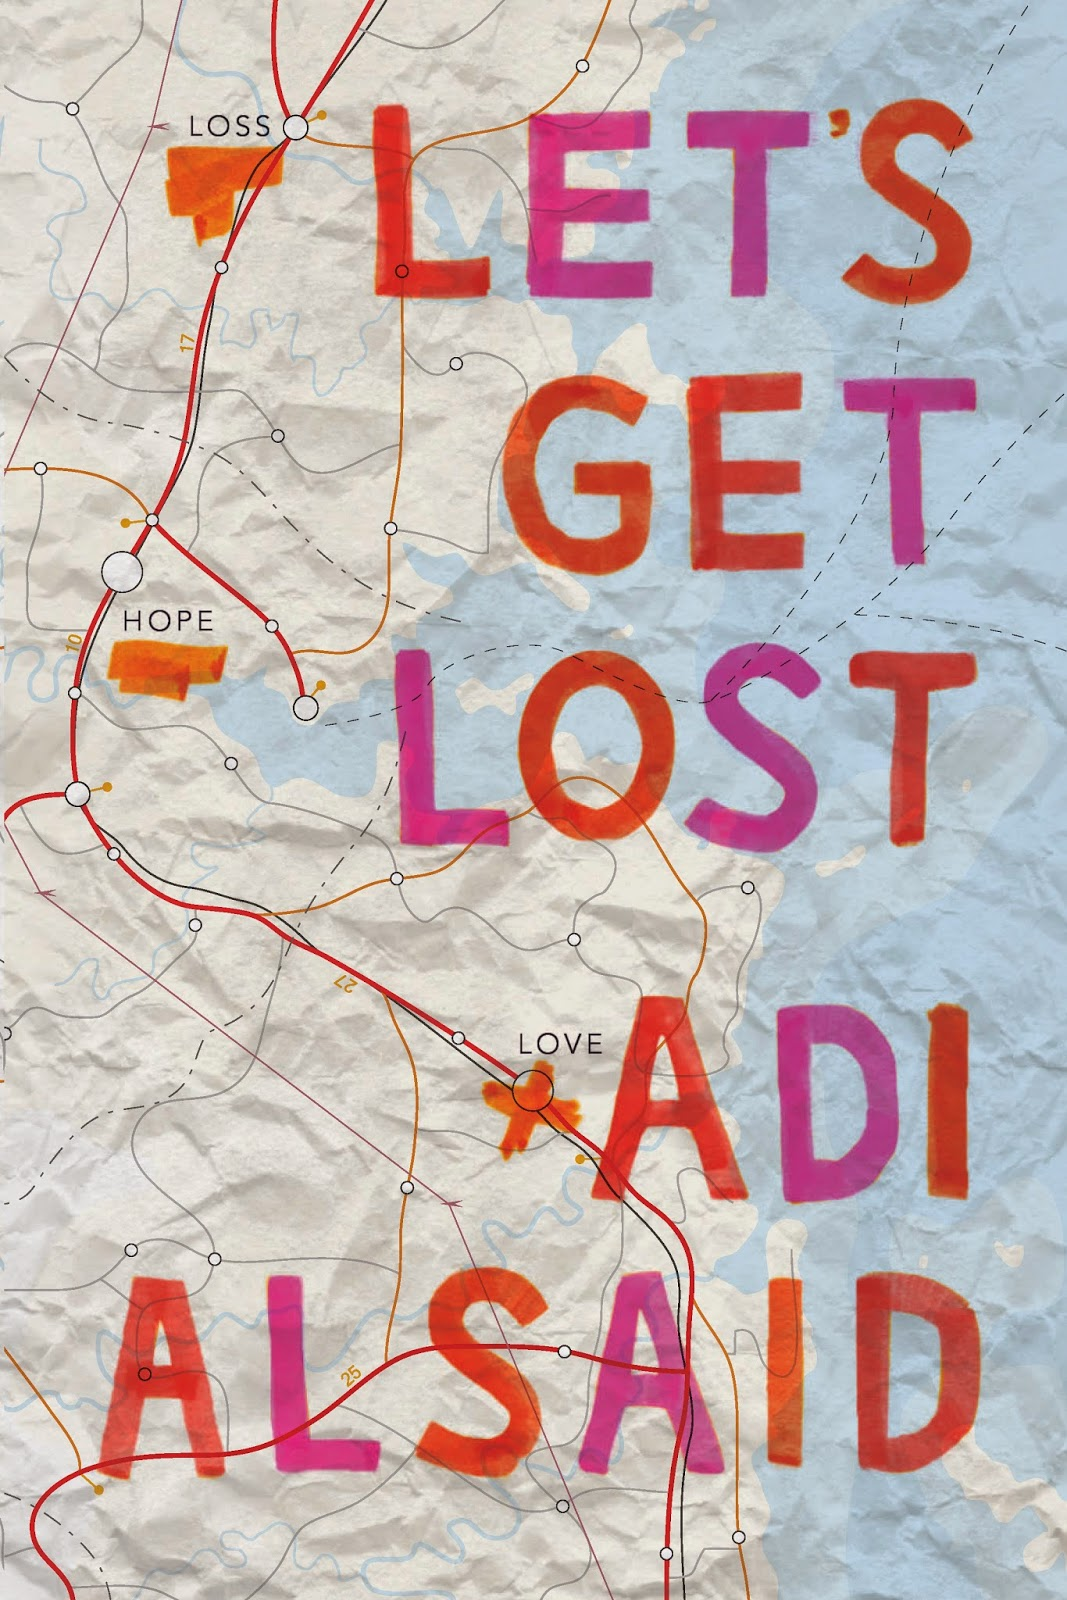 https://www.goodreads.com/book/show/18812437-let-s-get-lost